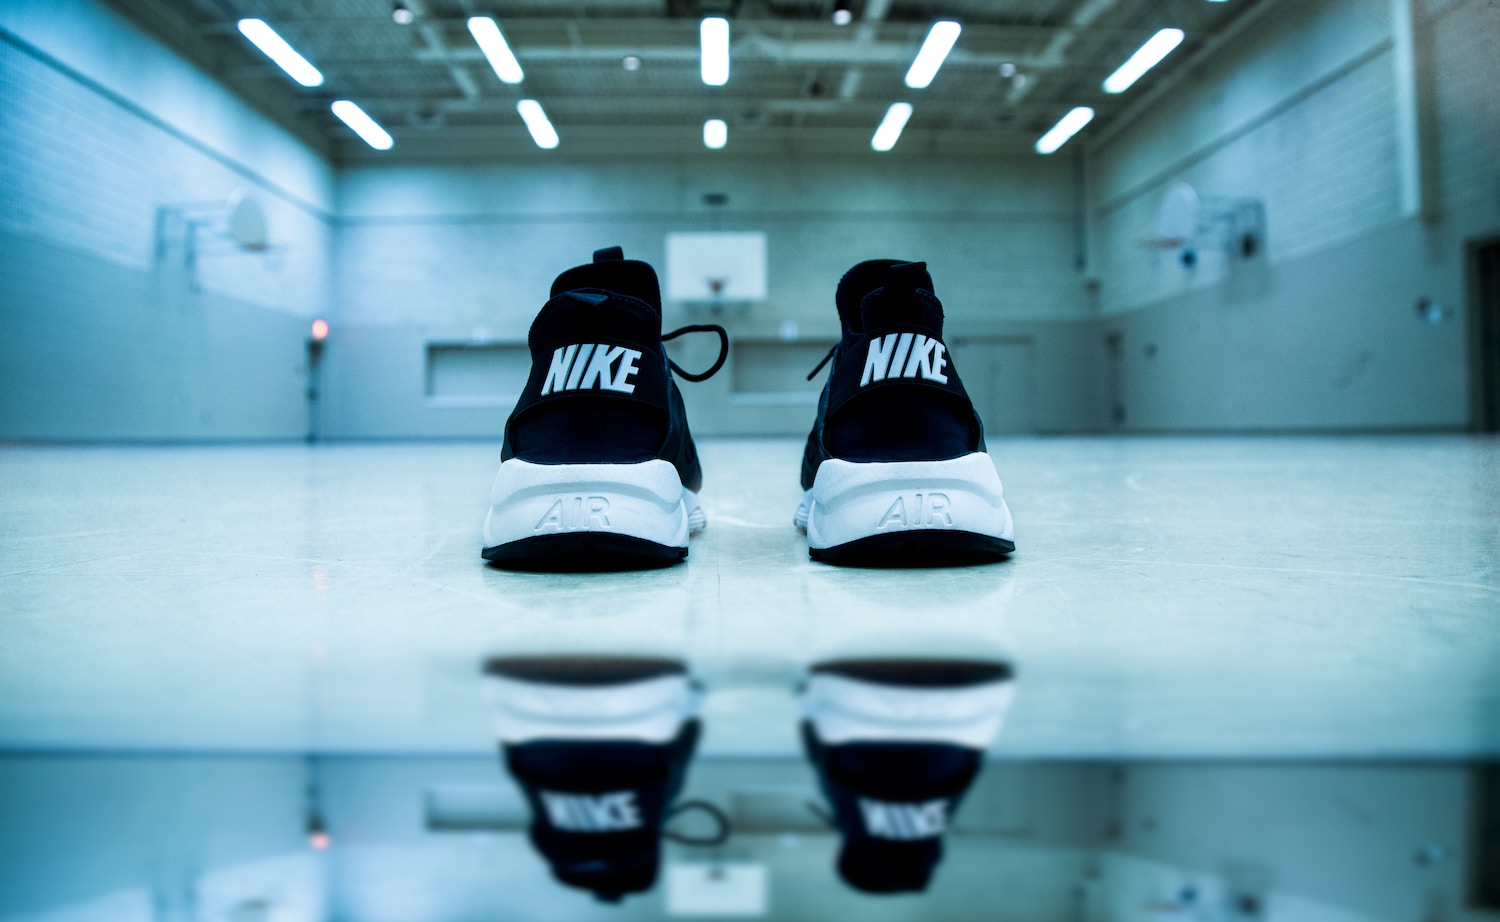 1d8faddb71e9 How Nike Re-defined the Power of Brand Image3 min read